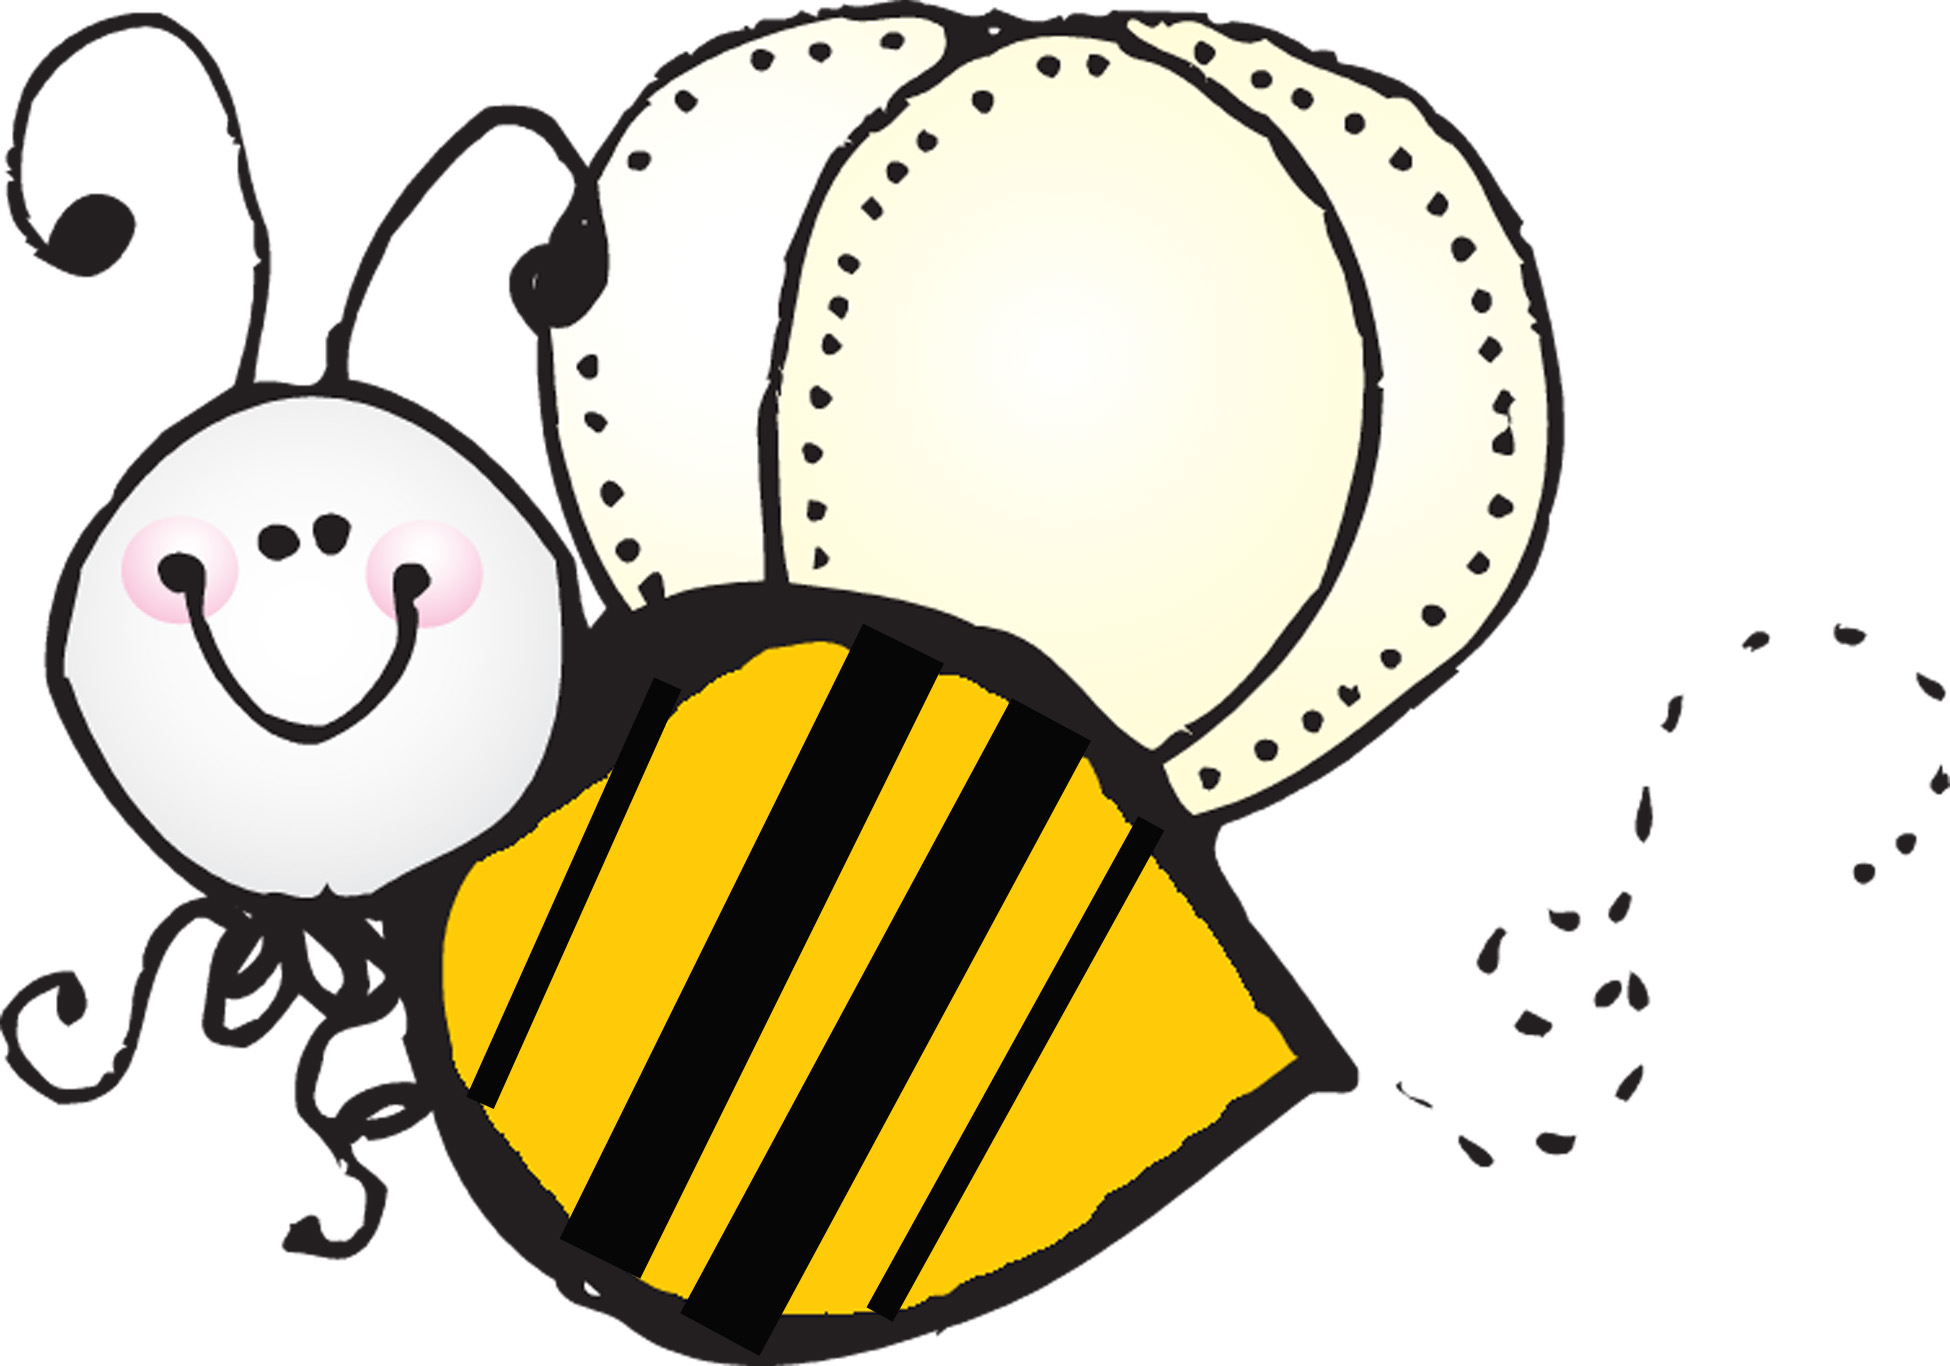 1950x1366 Bumble Bee Bee Clipart